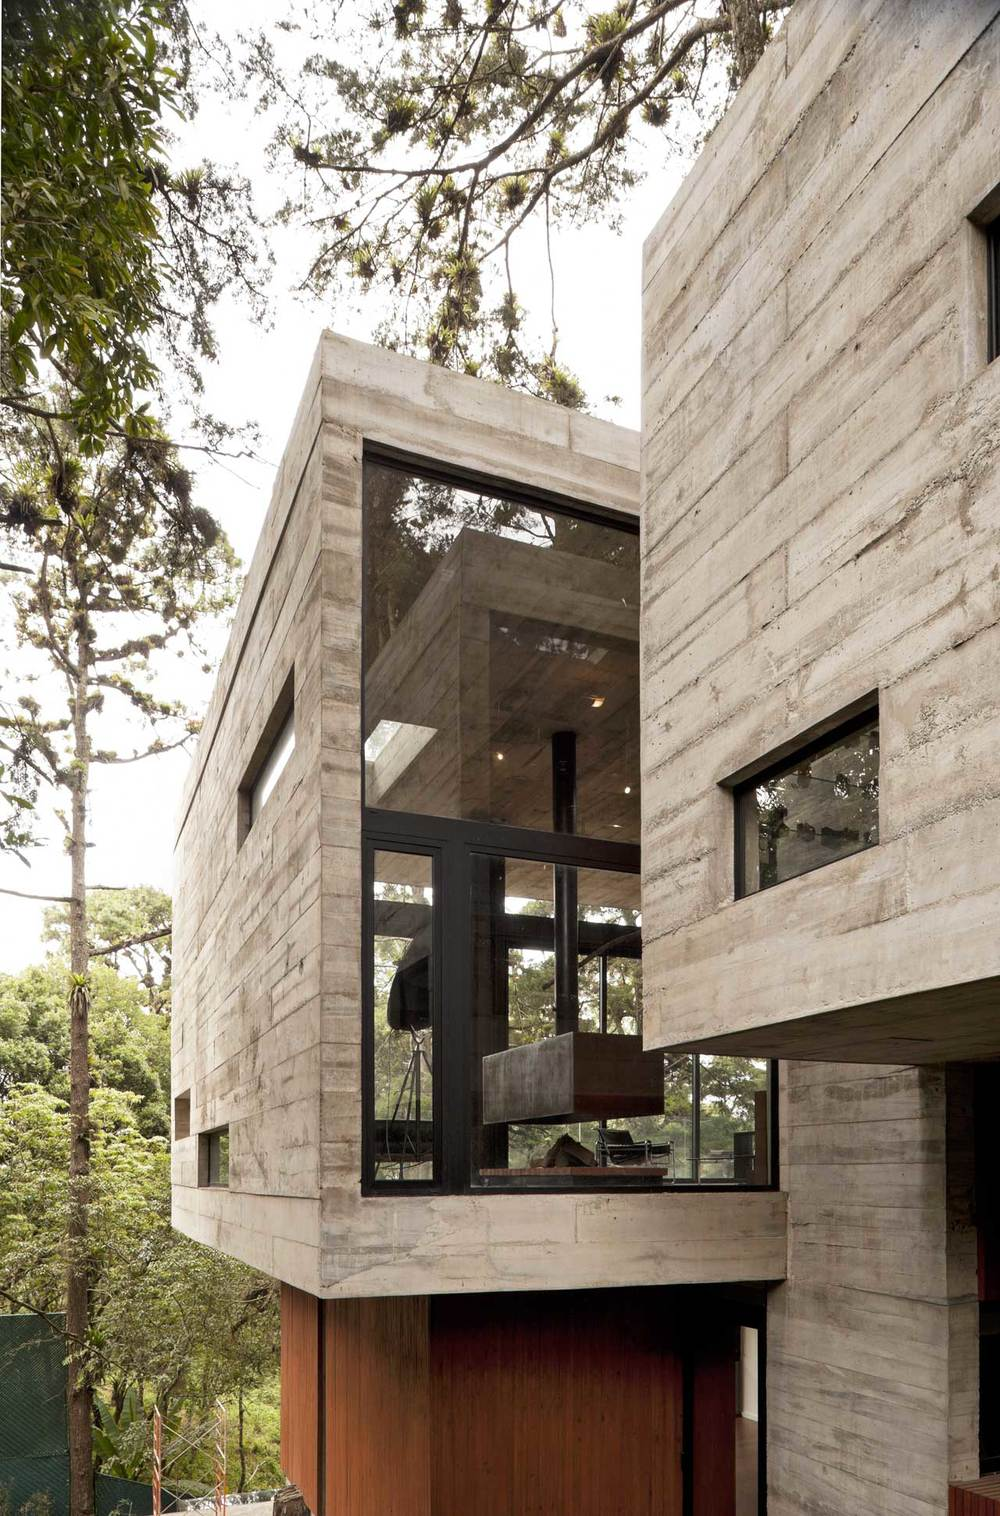 the-tree-mag Casa Corallo by PAZ Arquitectura-50.jpg